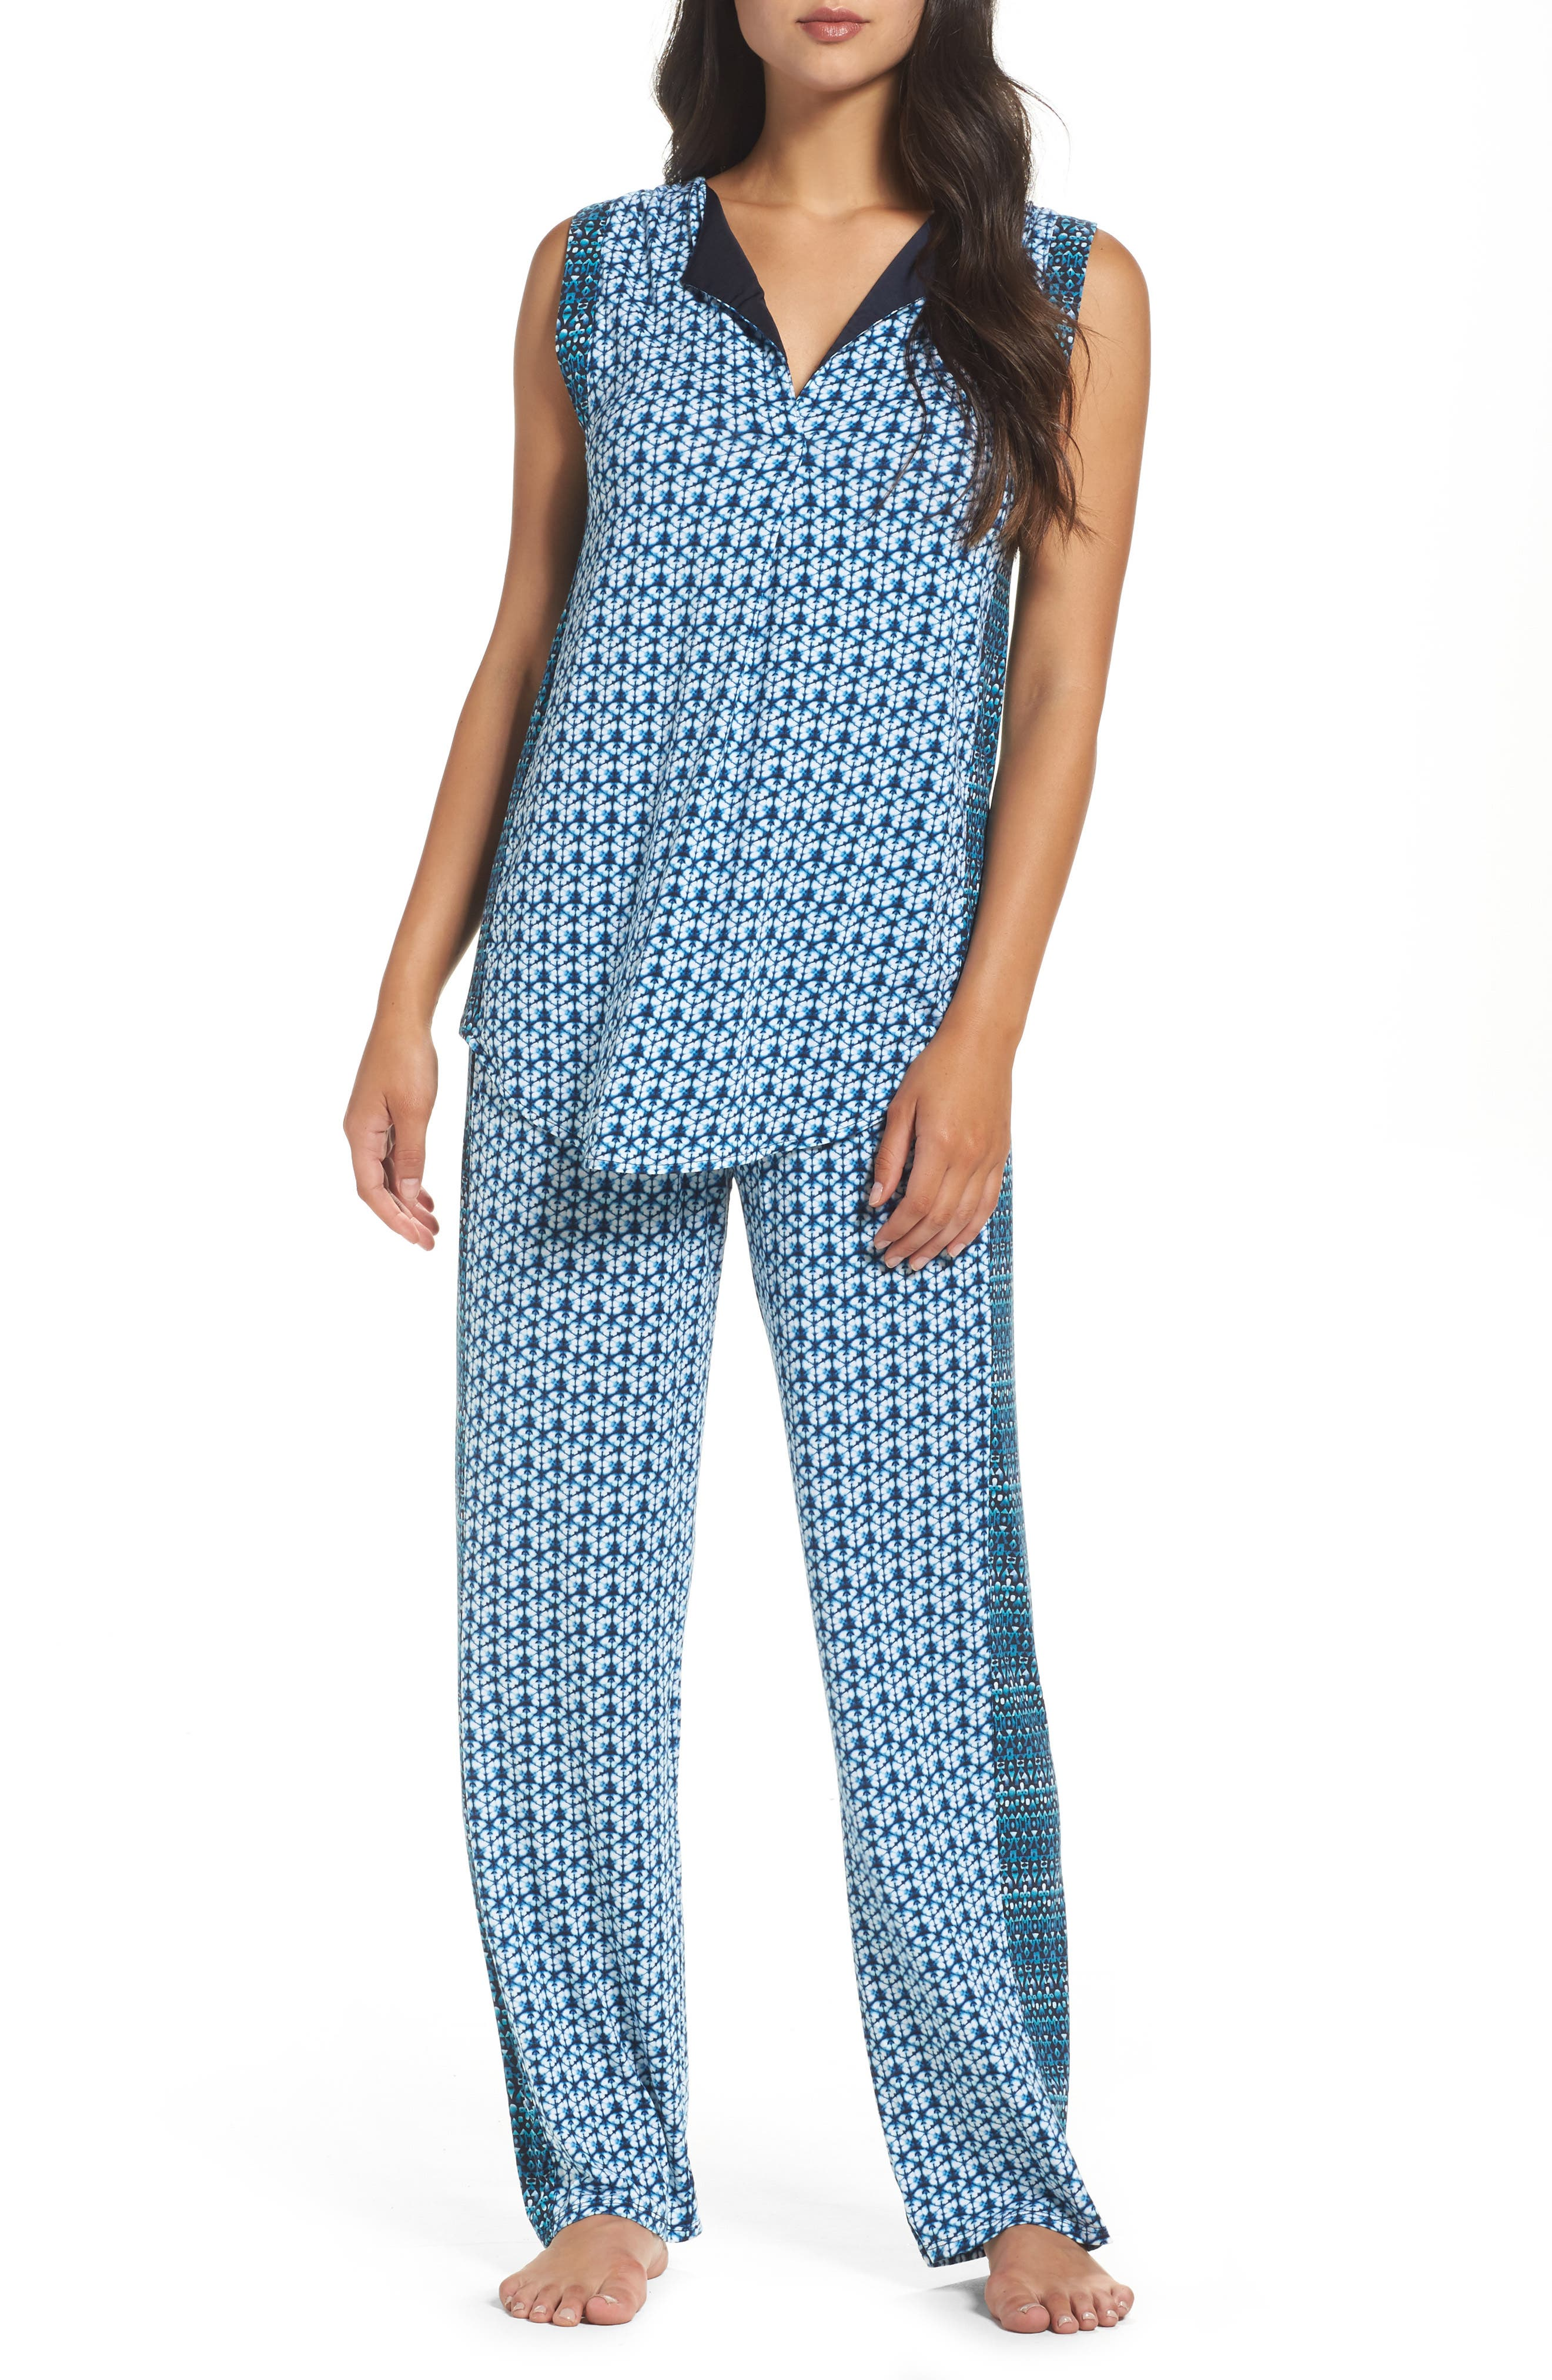 Midnight by Carole Hochman Pajamas